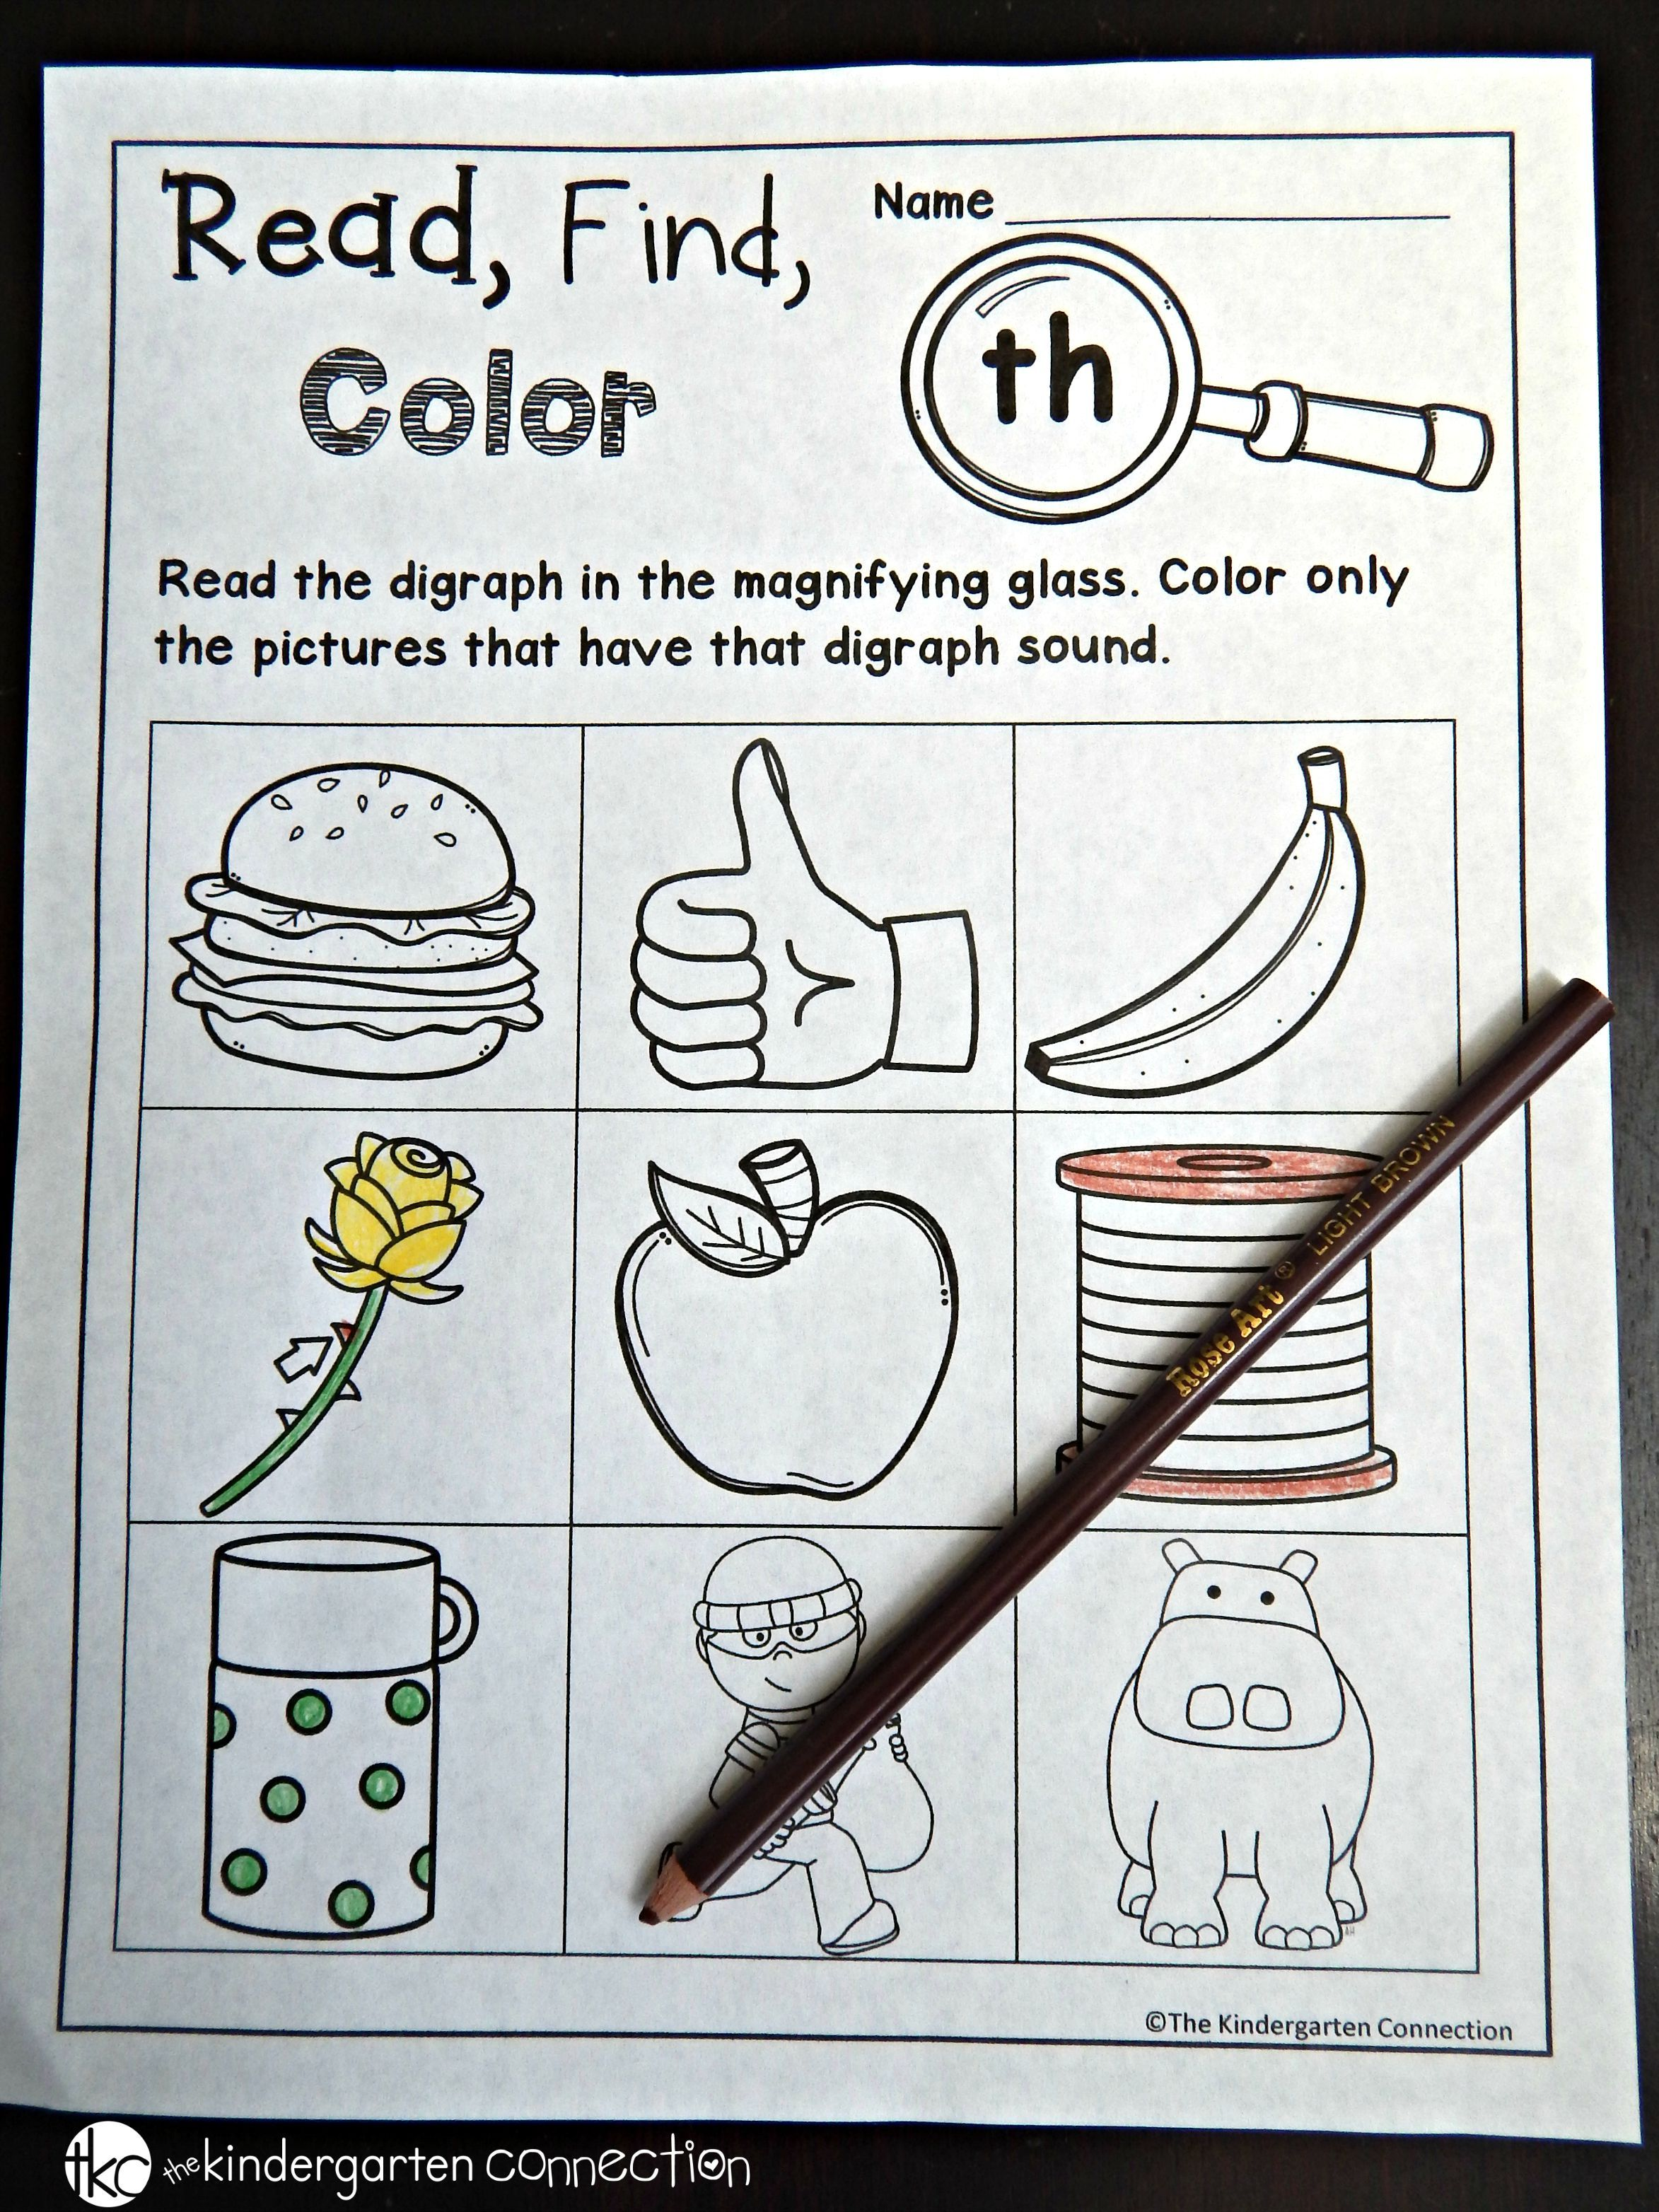 Teach Child How To Read Hooked On Phonics Kindergarten